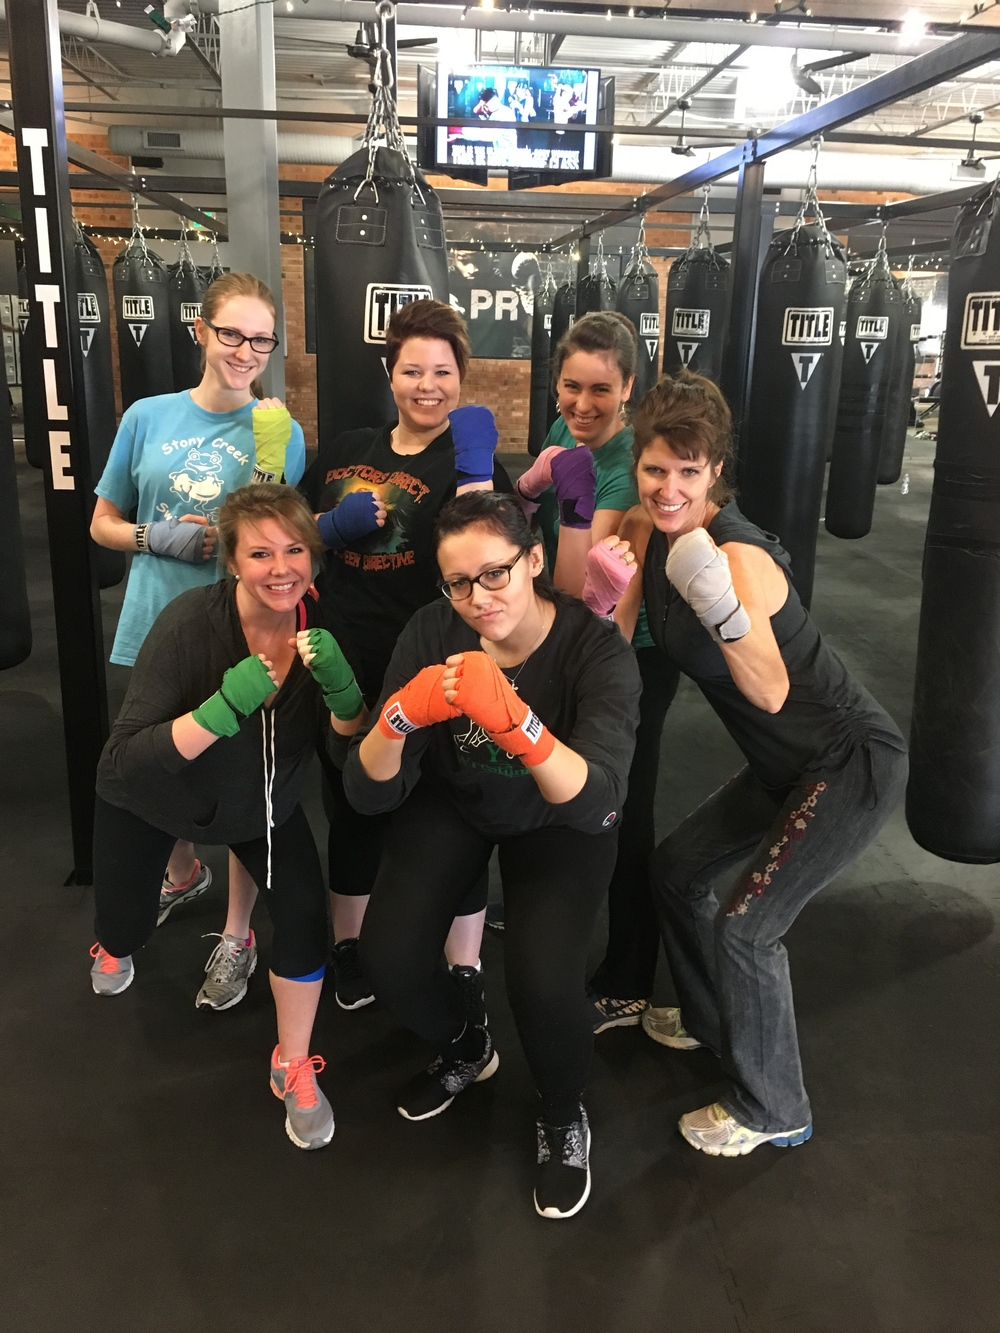 Dental Assistants in Indianapolis Going Boxing